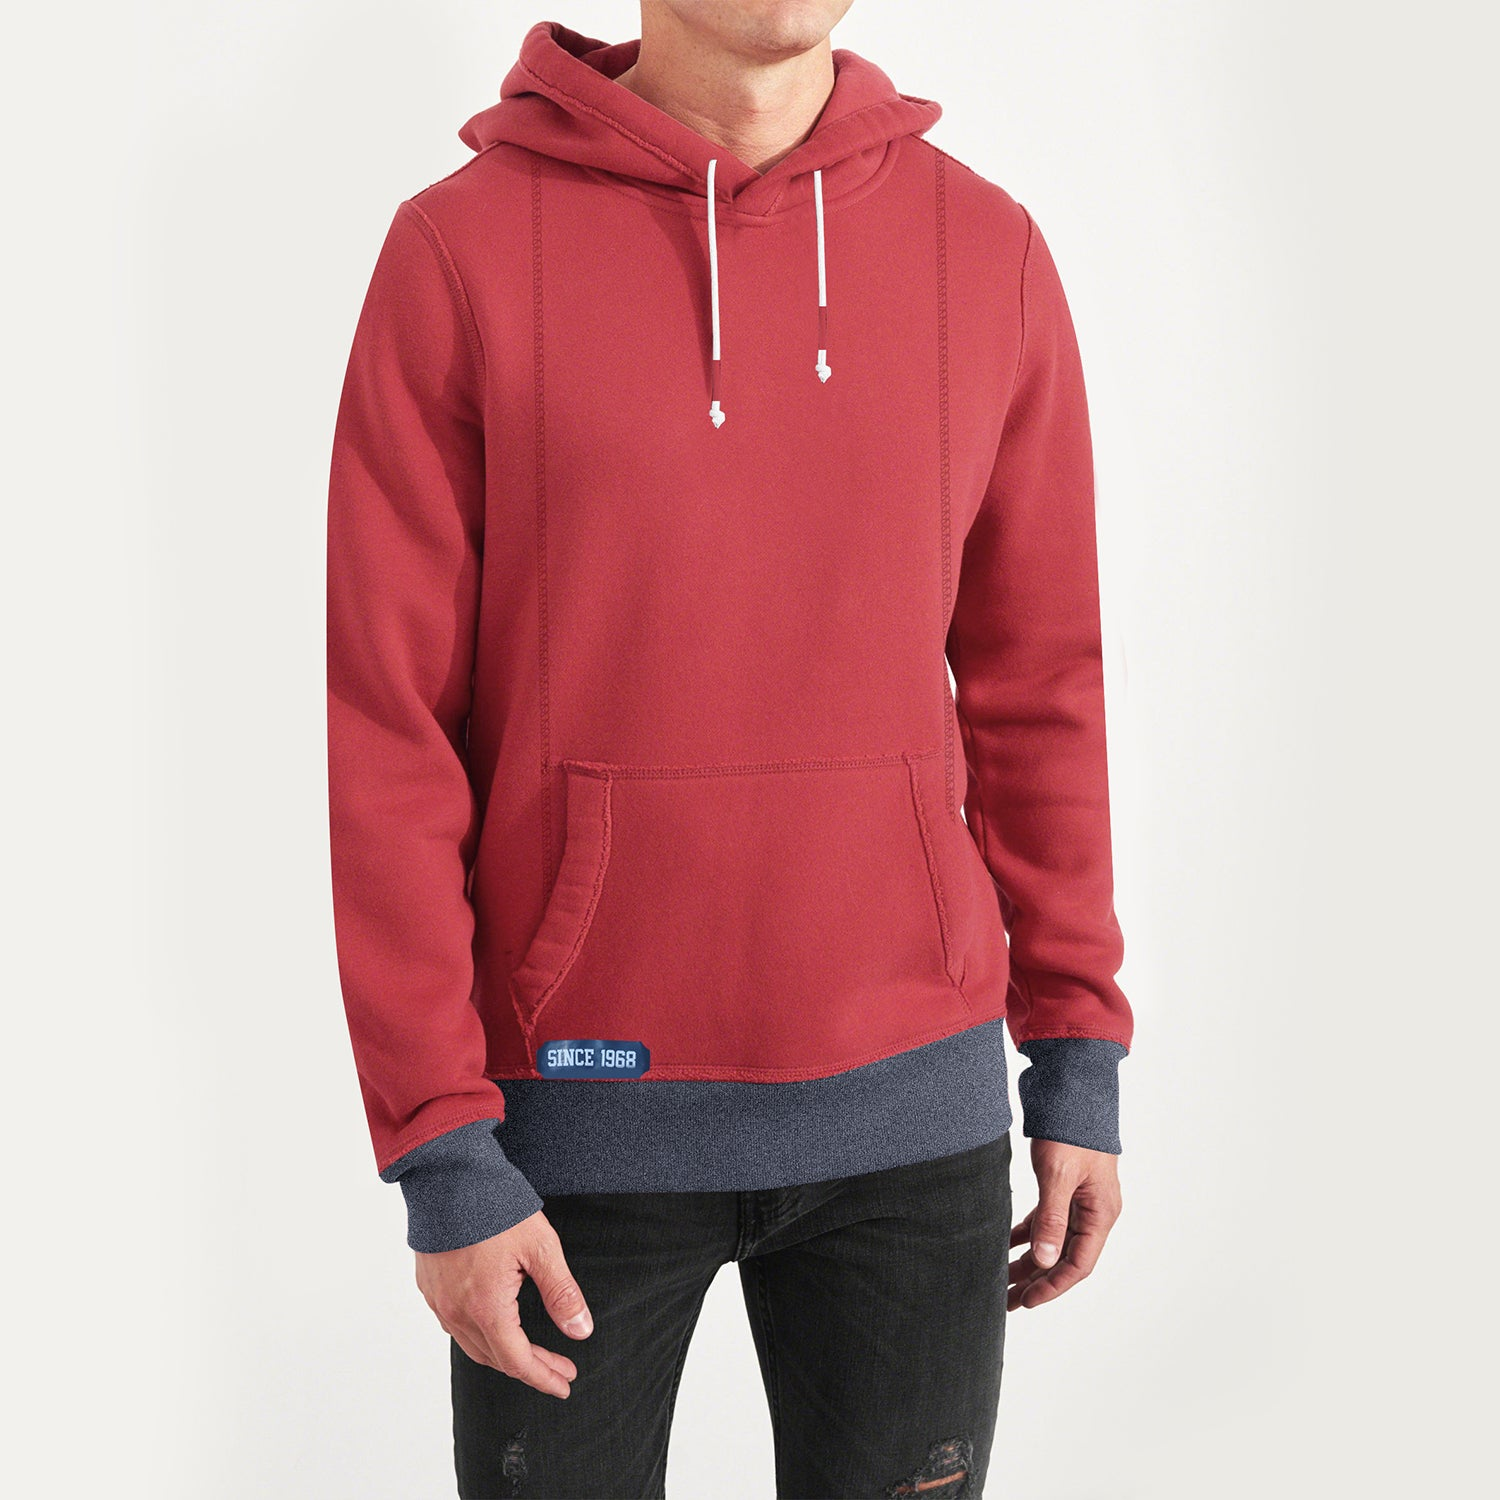 cbcef76104a5 Fat Face Fleece Pullover Hoodie For Men-Coral Pink-NA7113 - BrandsEgo